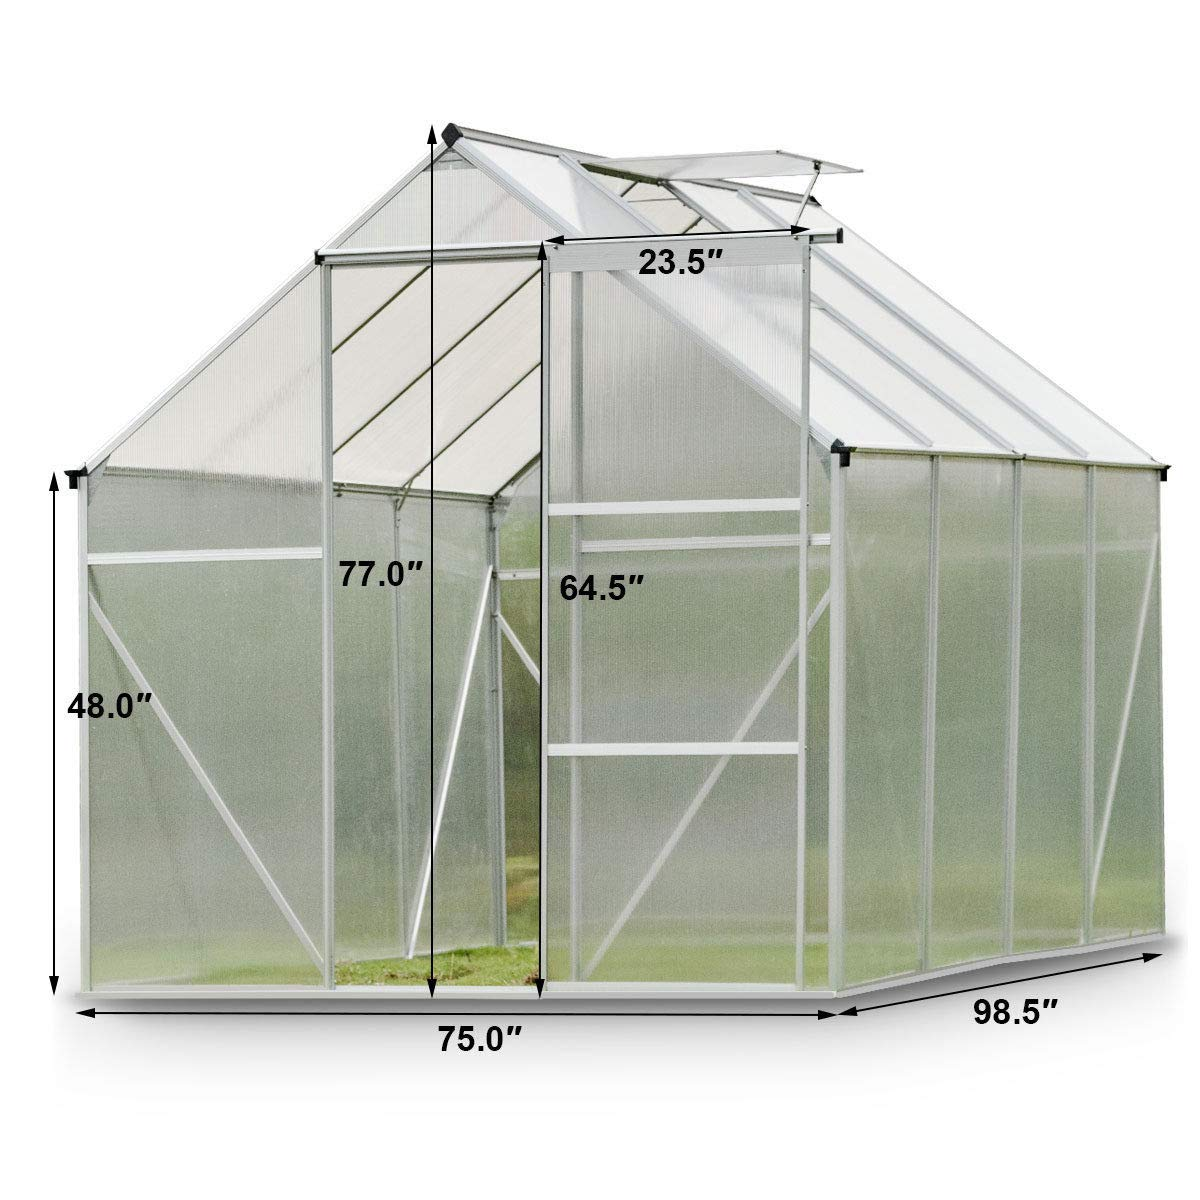 9TRADING 6.2'L x 8.2'D Walk-in Greenhouse Heavy Duty Polycarbonate Aluminum Frame,Free Tax,Delivered Within 10 Days